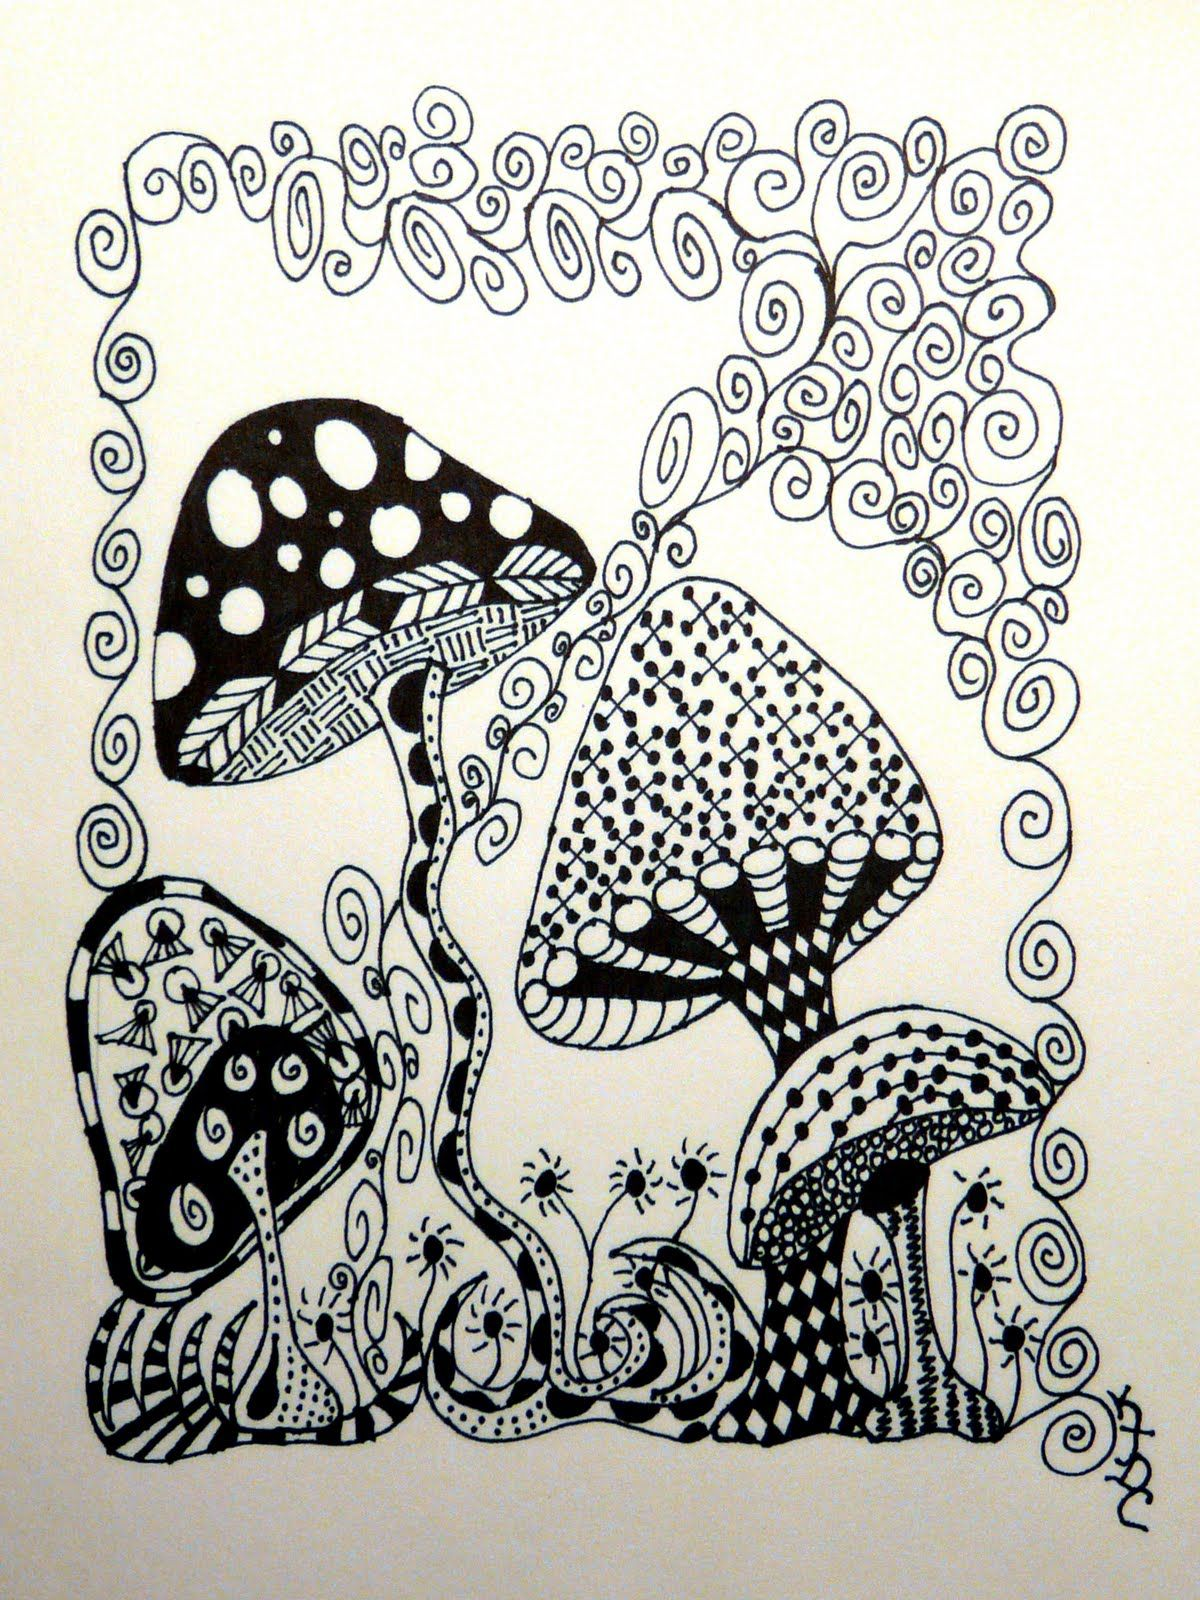 Zen doodle colour - Nice Mushrooms Abstract Doodle Zentangle Zendoodle Paisley Coloring Pages